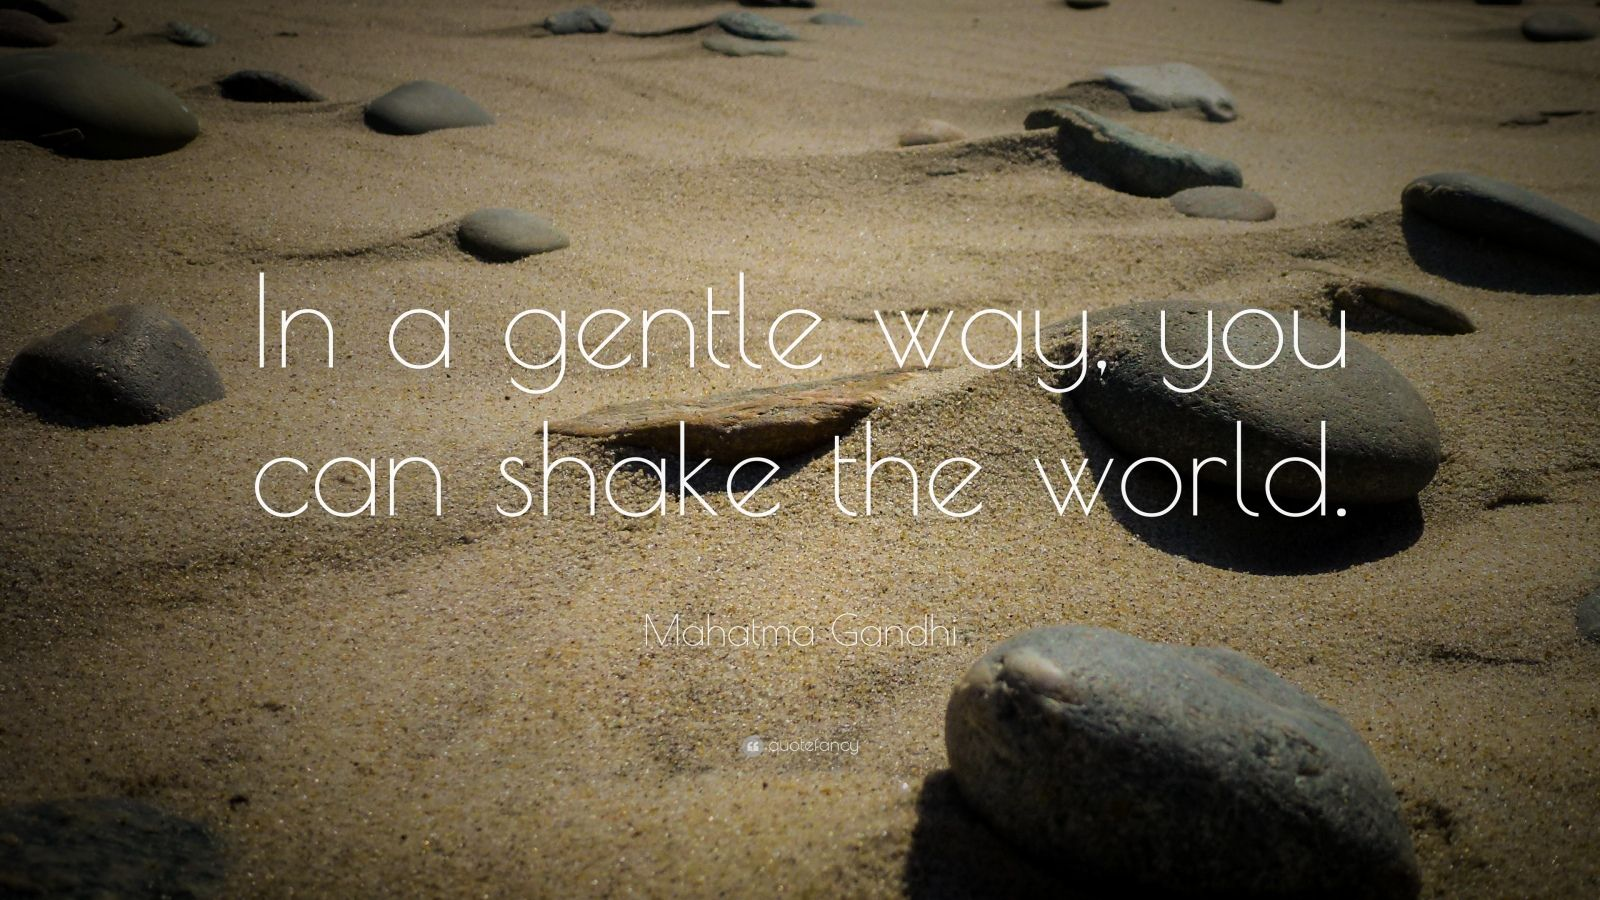 A Gentle Way You Can Shake the World in Gandhi